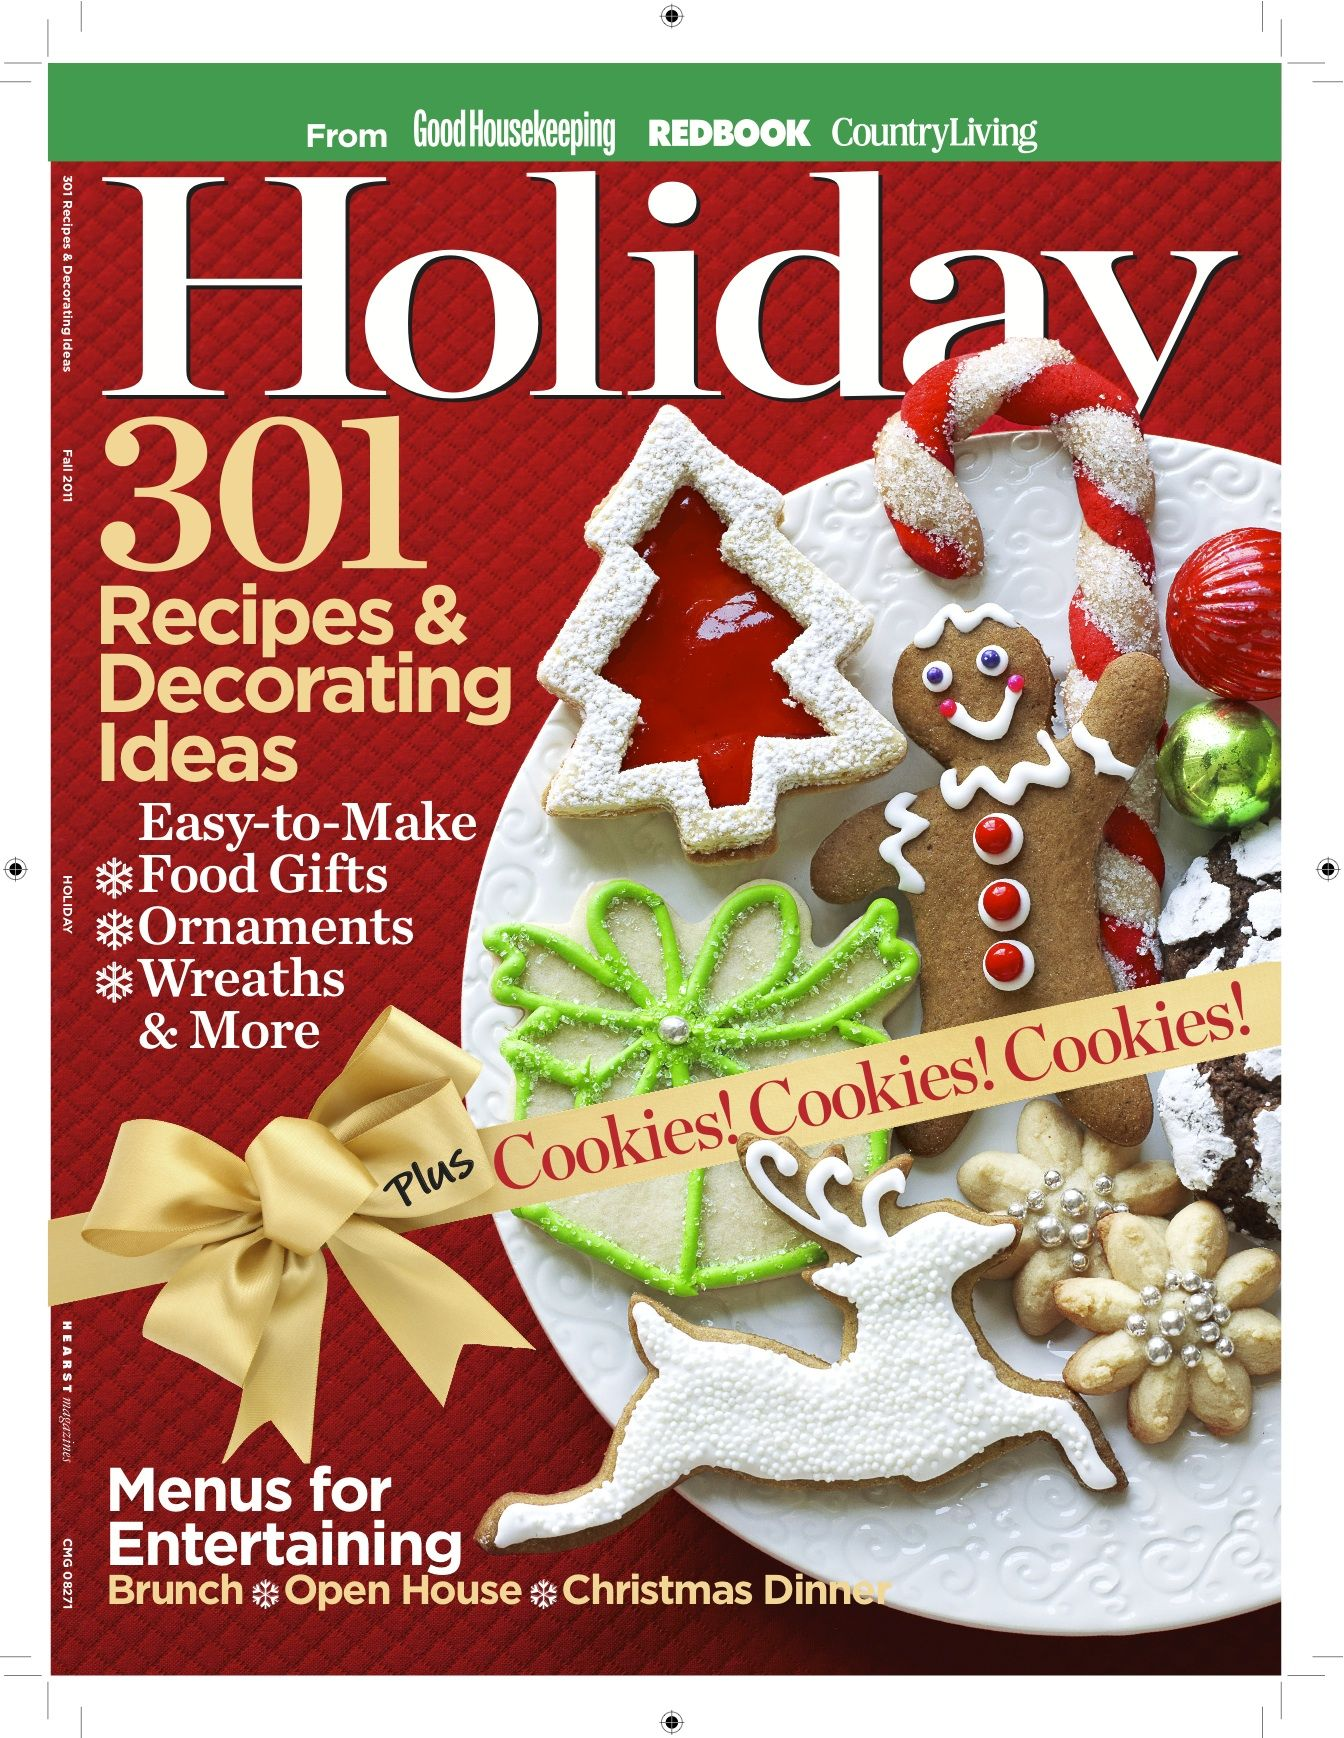 Holiday: 301 Recipes & Decorating Ideas